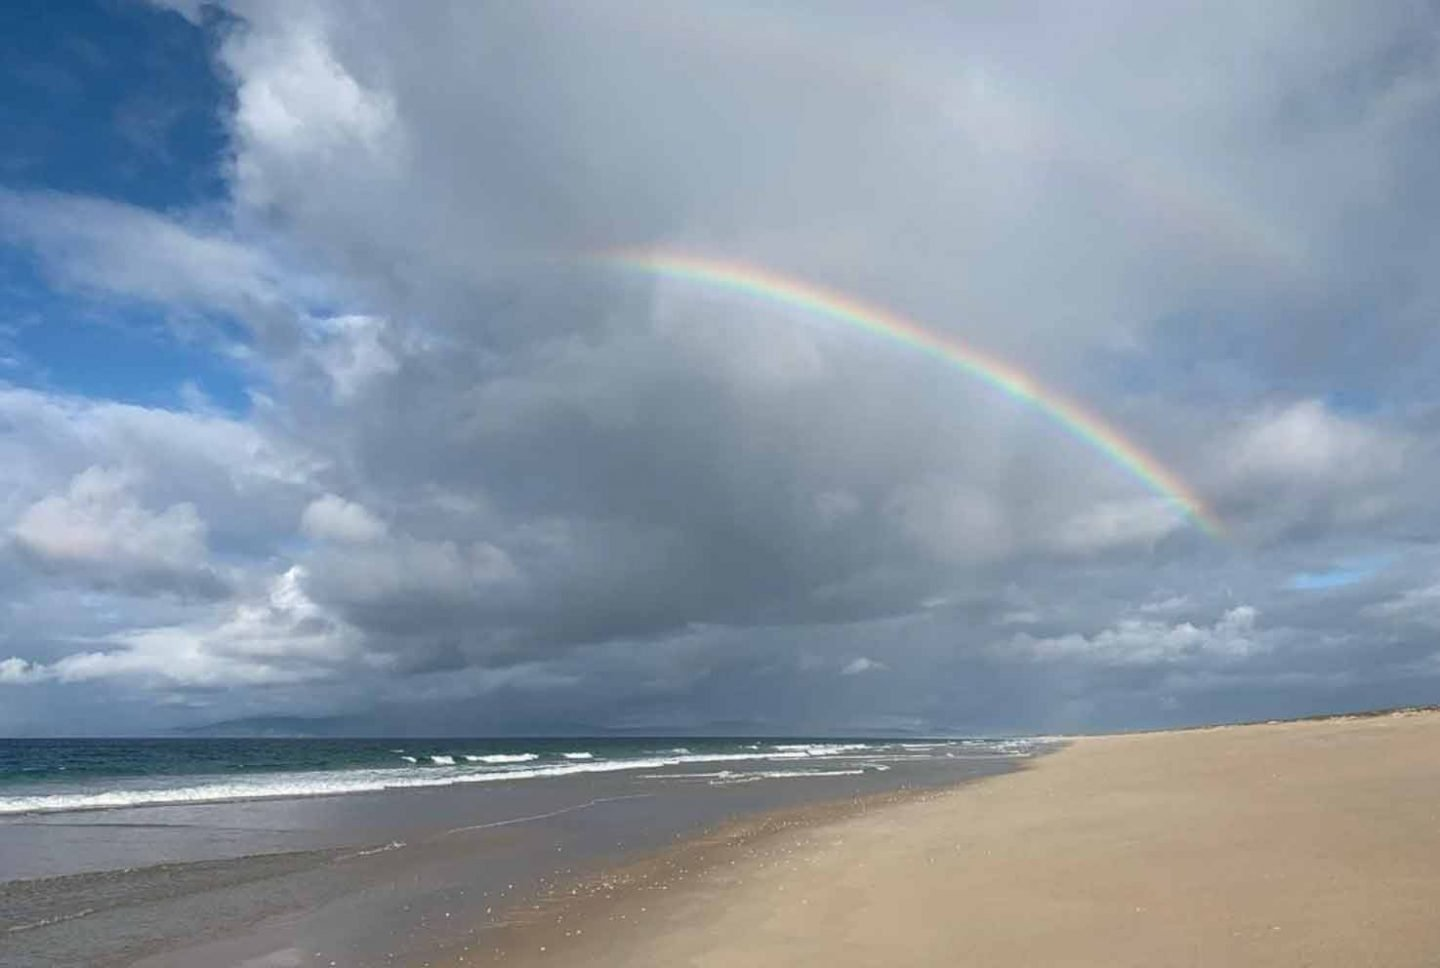 a beach with a rainbow